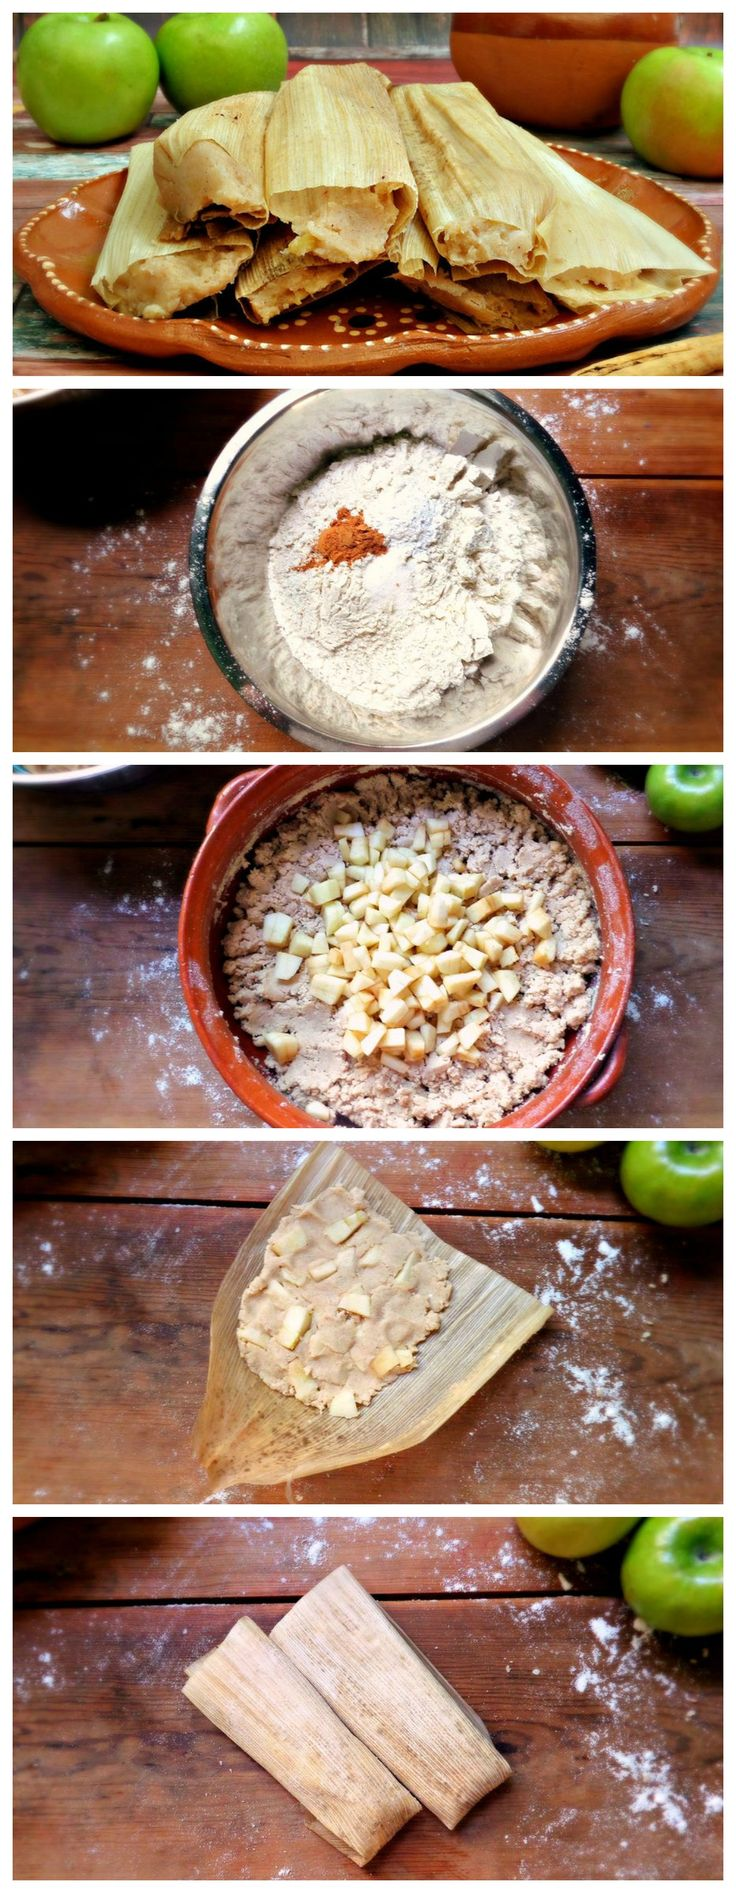 1518 best lety images on pinterest cooking recipes healthy eating apple tamales with cinnamon spanish recipesmexican food forumfinder Images